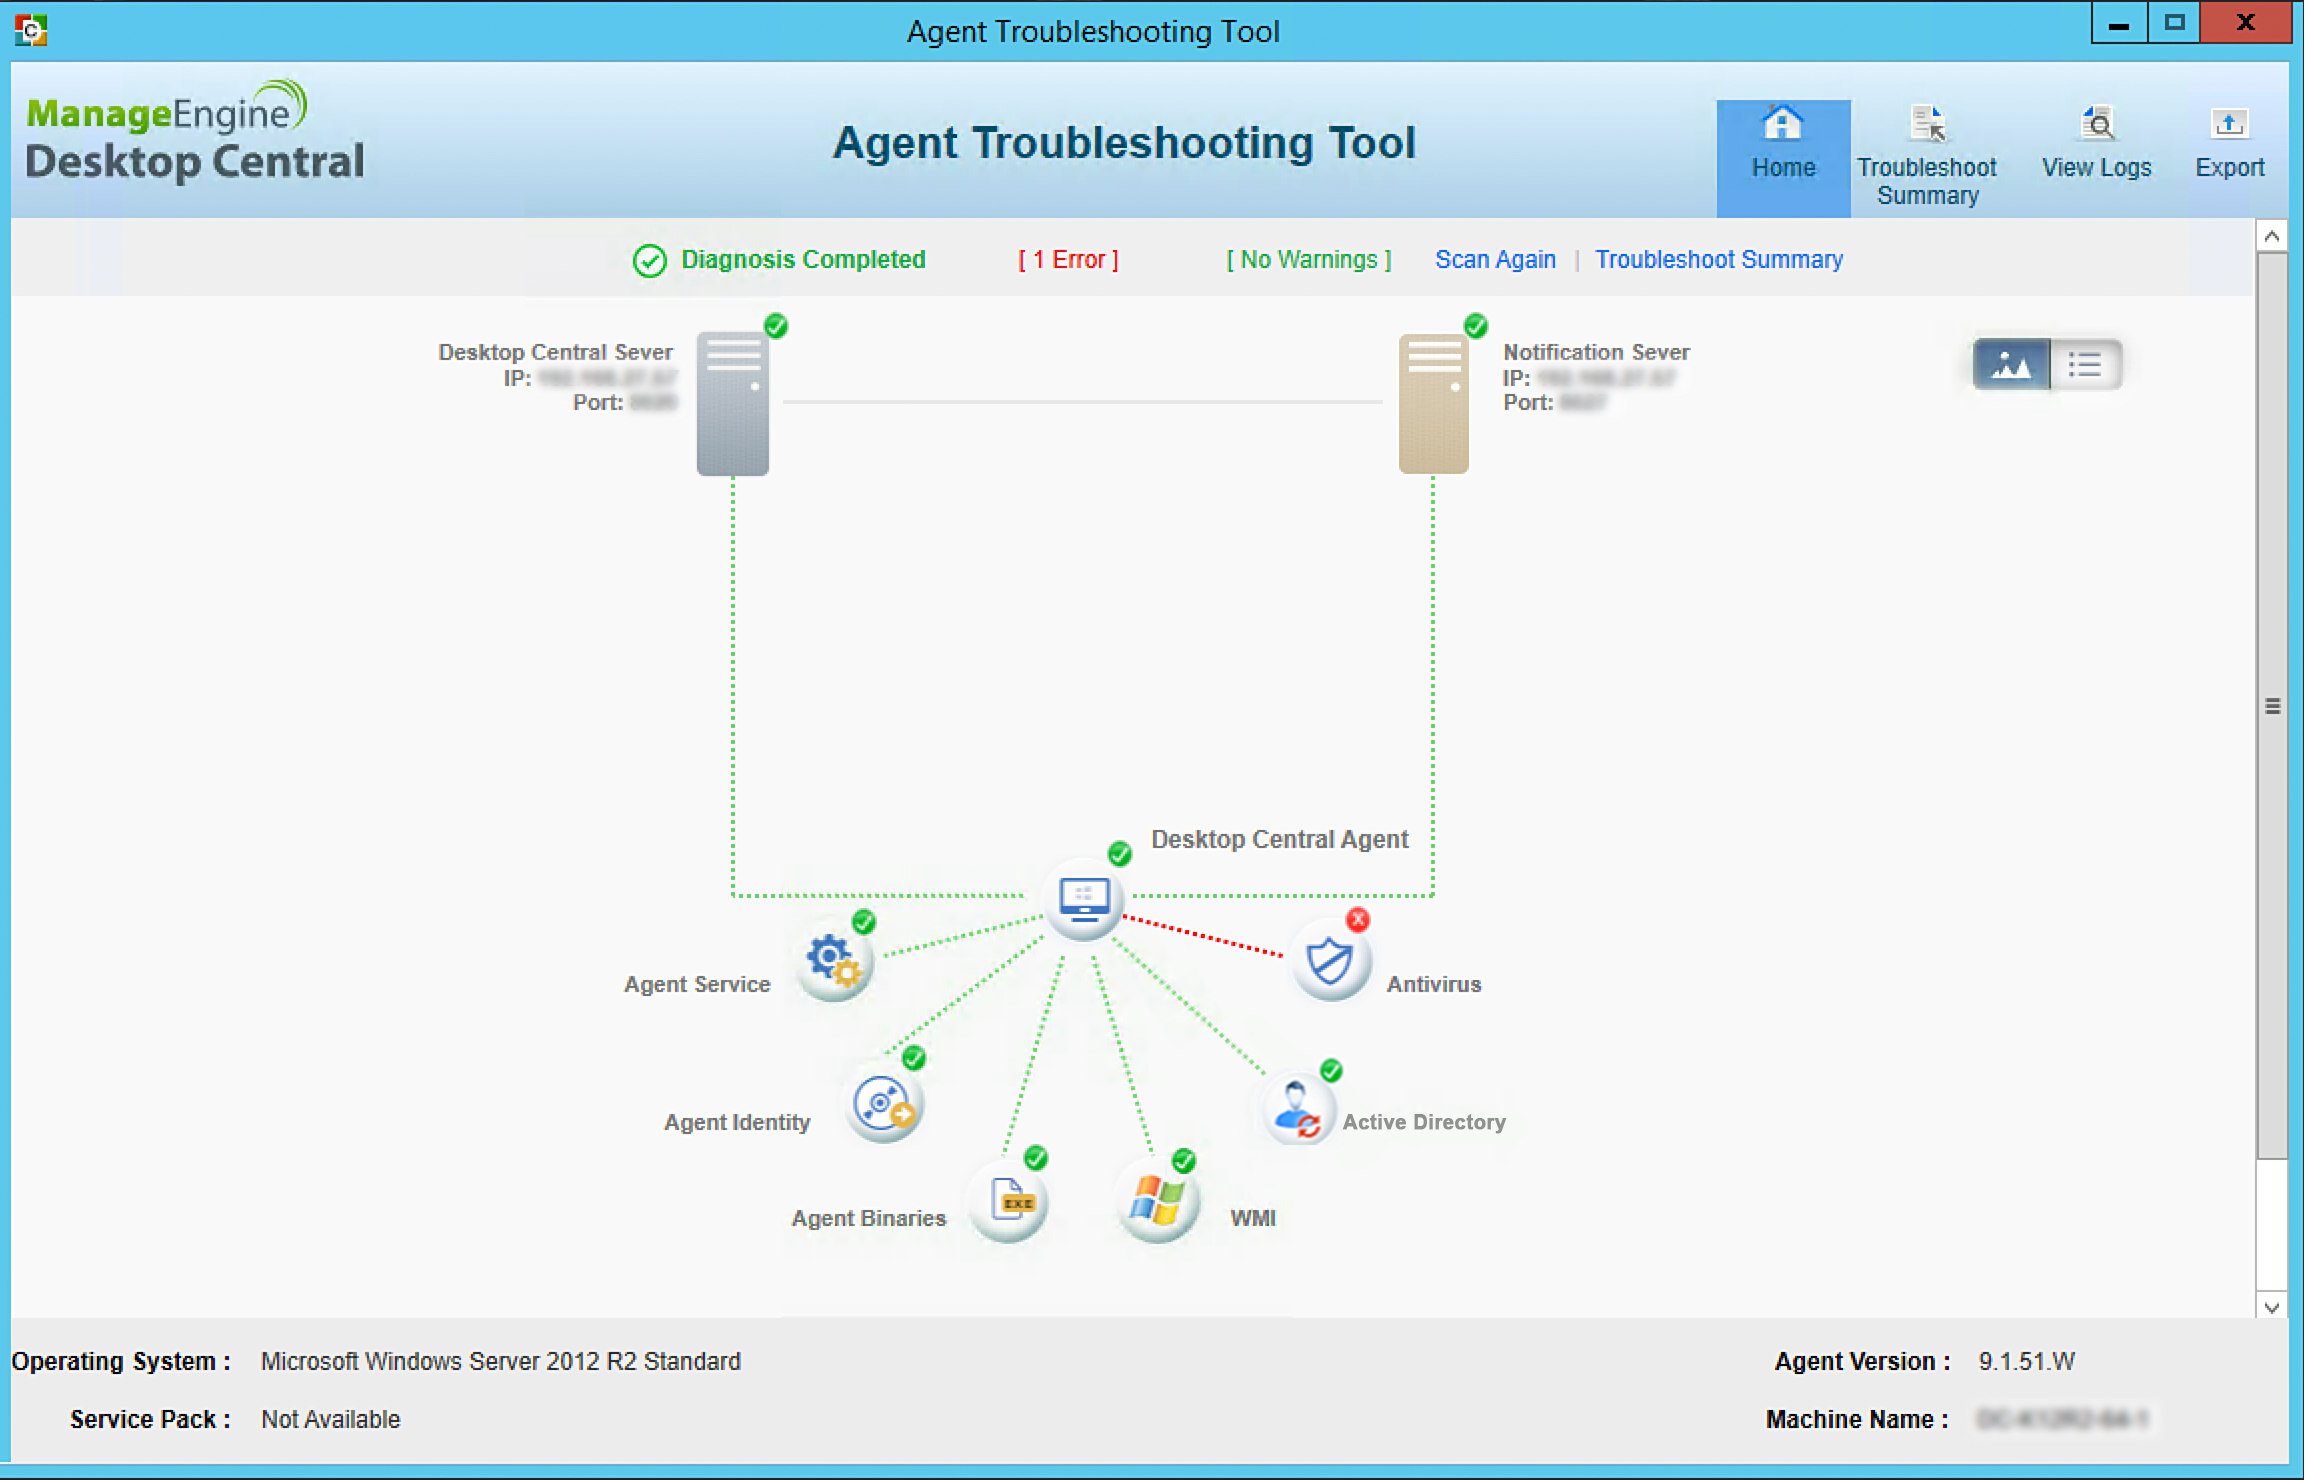 Agent Troubleshooting Tool | ManageEngine Desktop Central